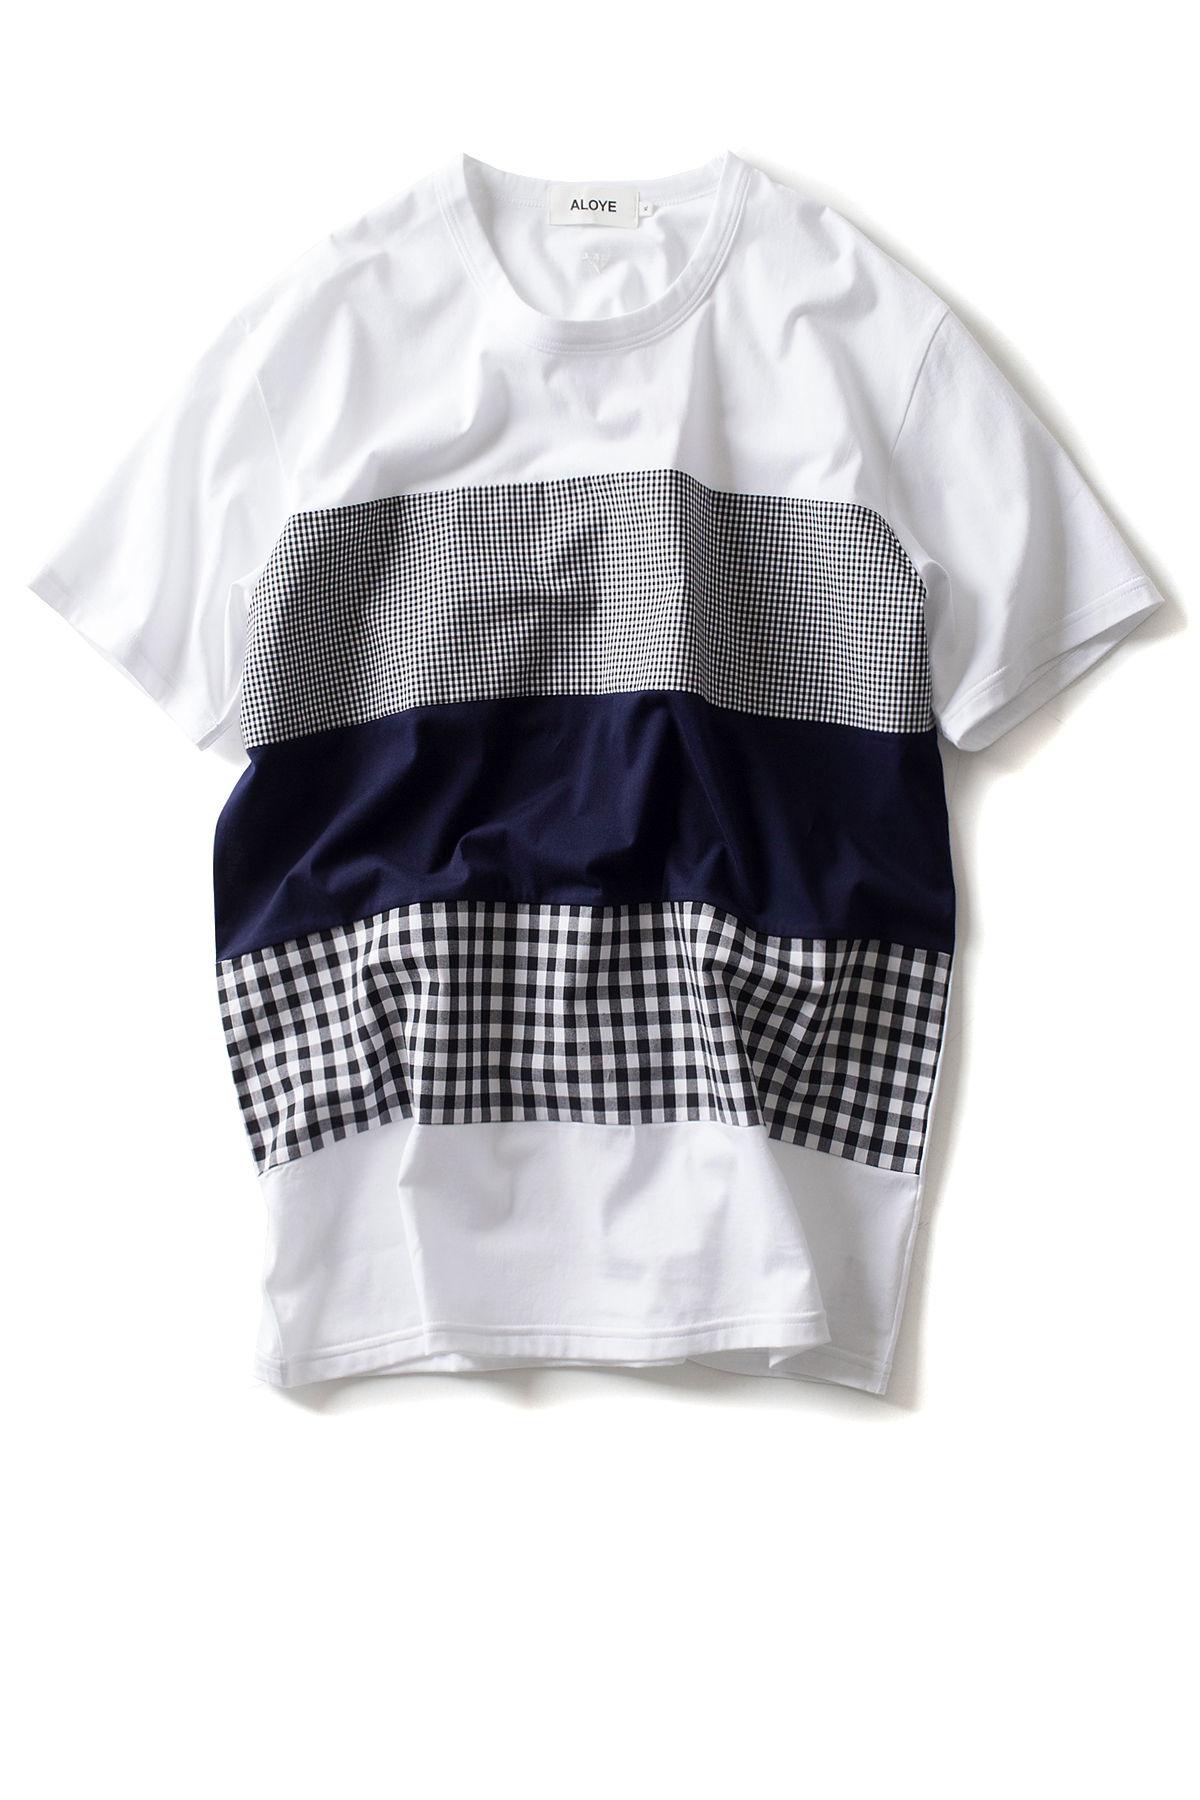 ALOYE : Shirt Fabrics - Short Sleeve T-Shirt (Black Gingham)